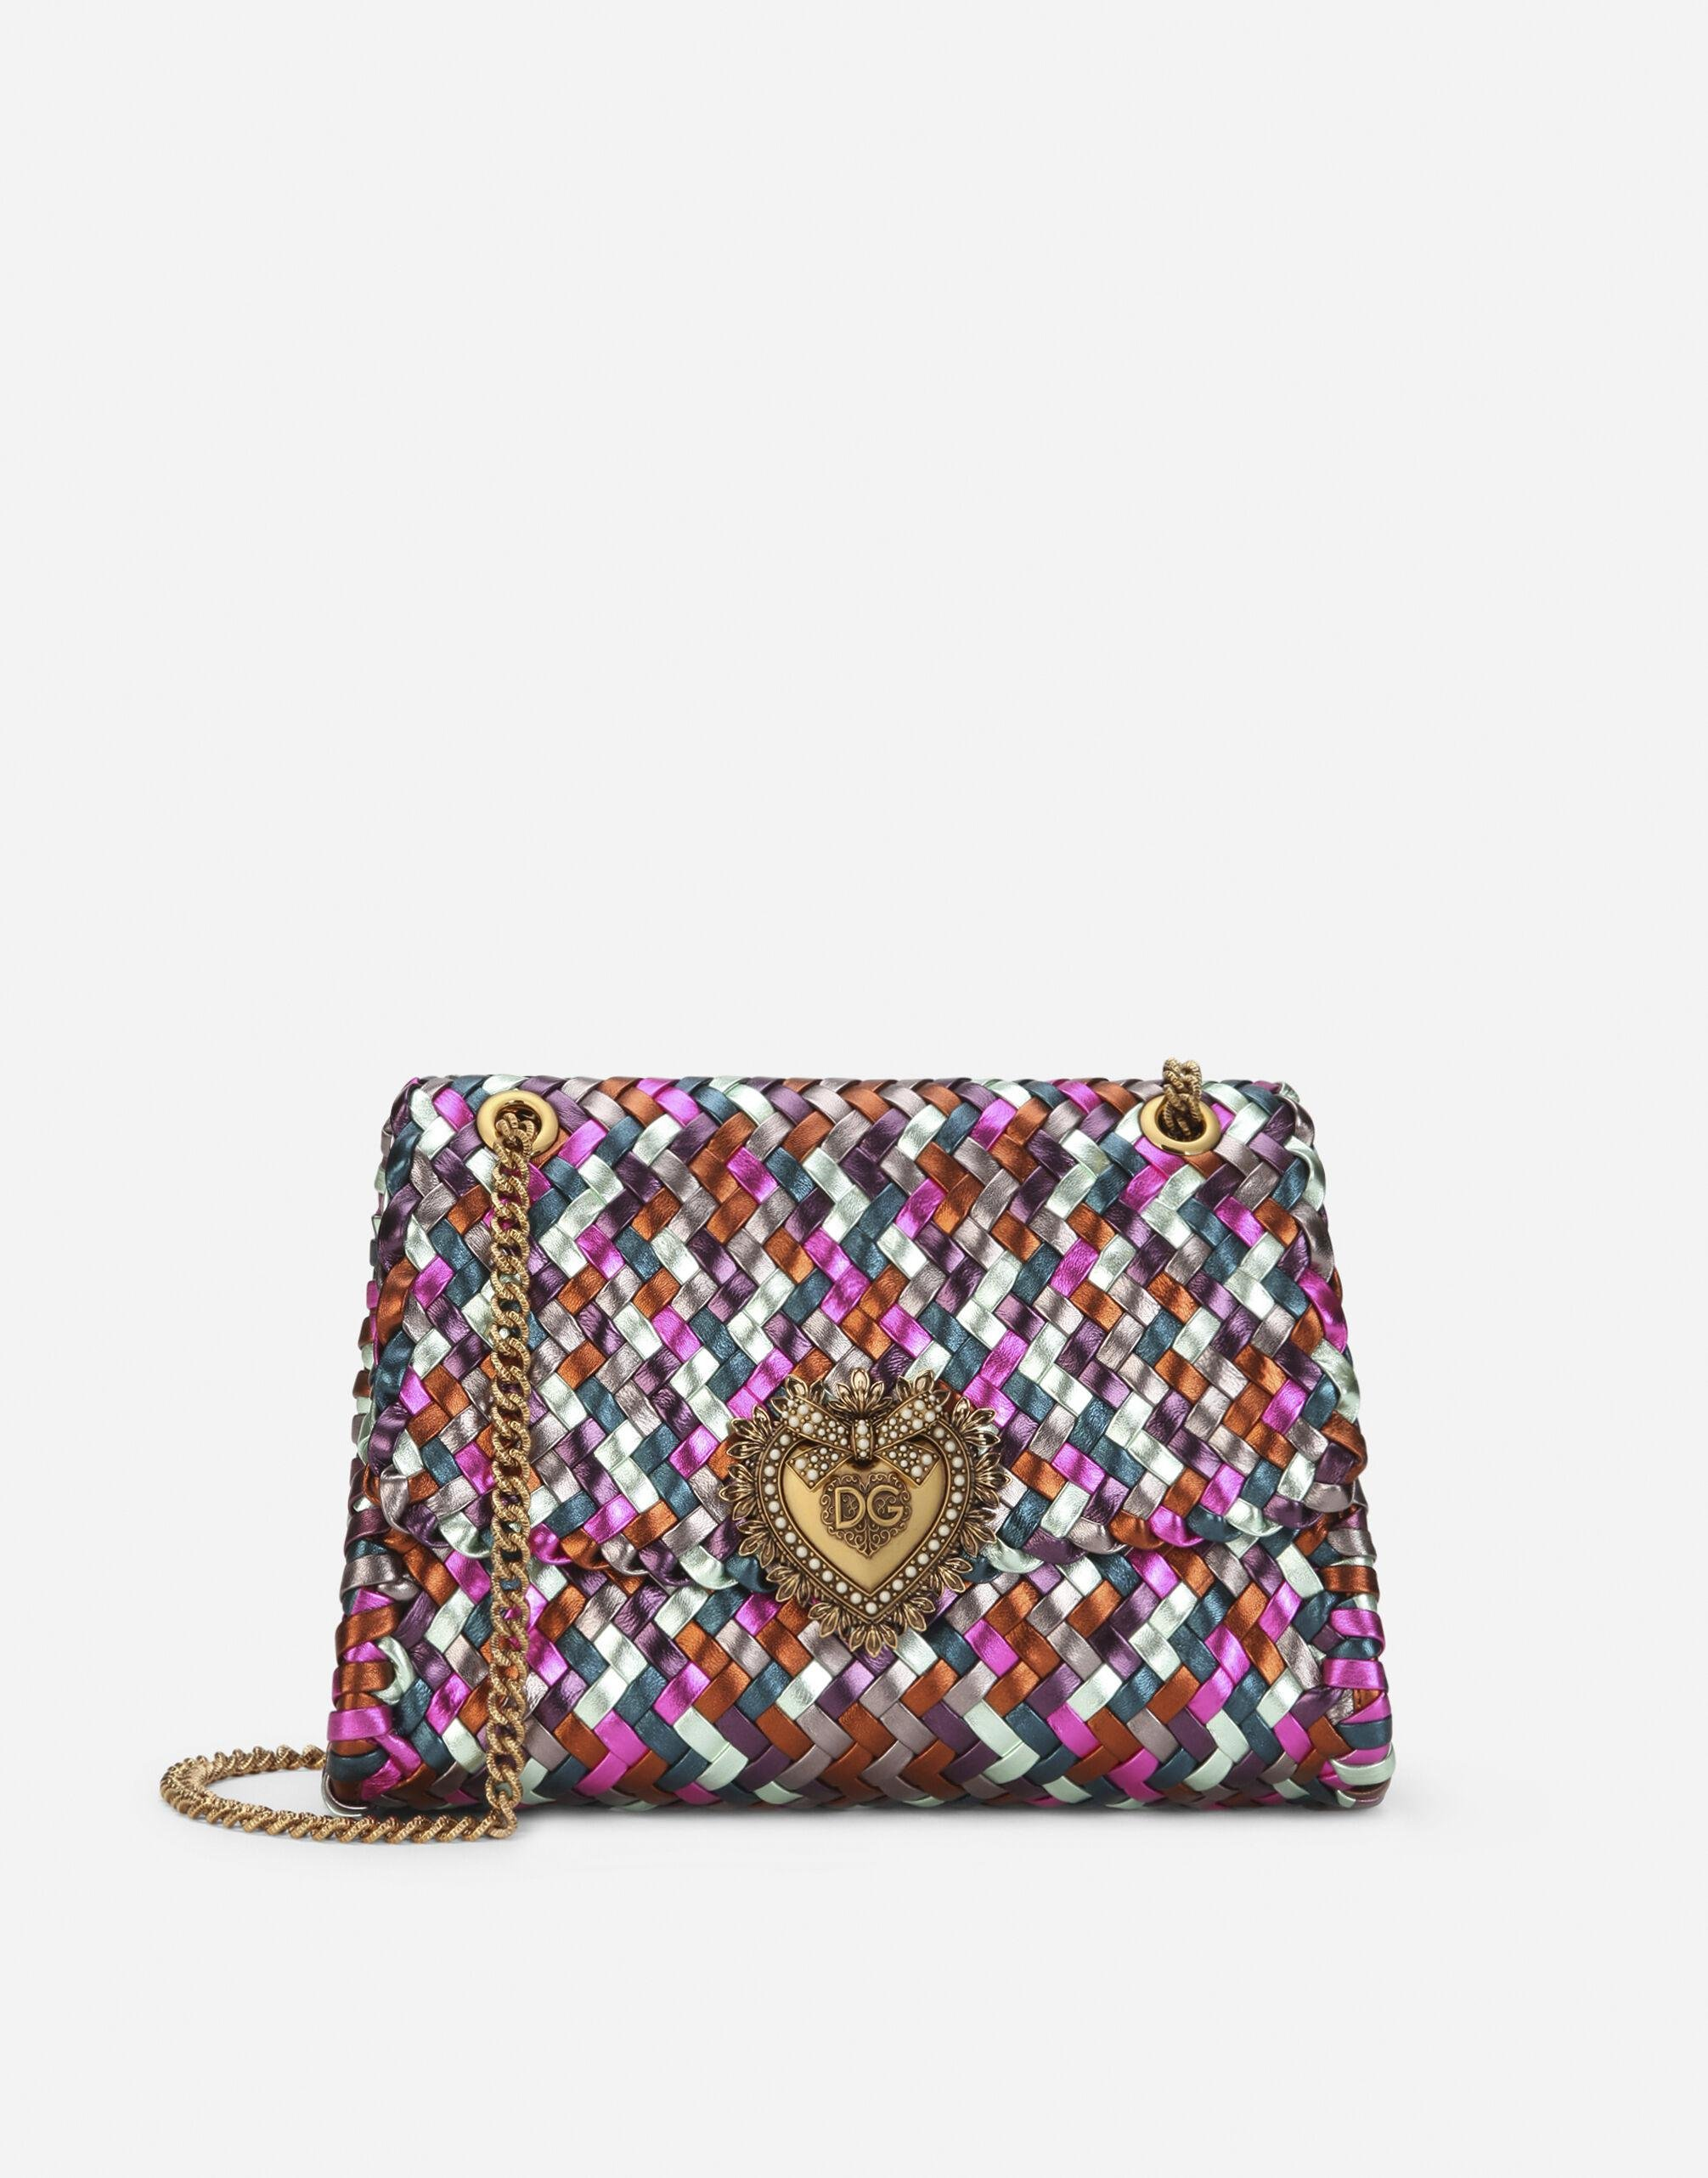 Large Devotion shoulder bag in multi-colored foiled woven nappa leather